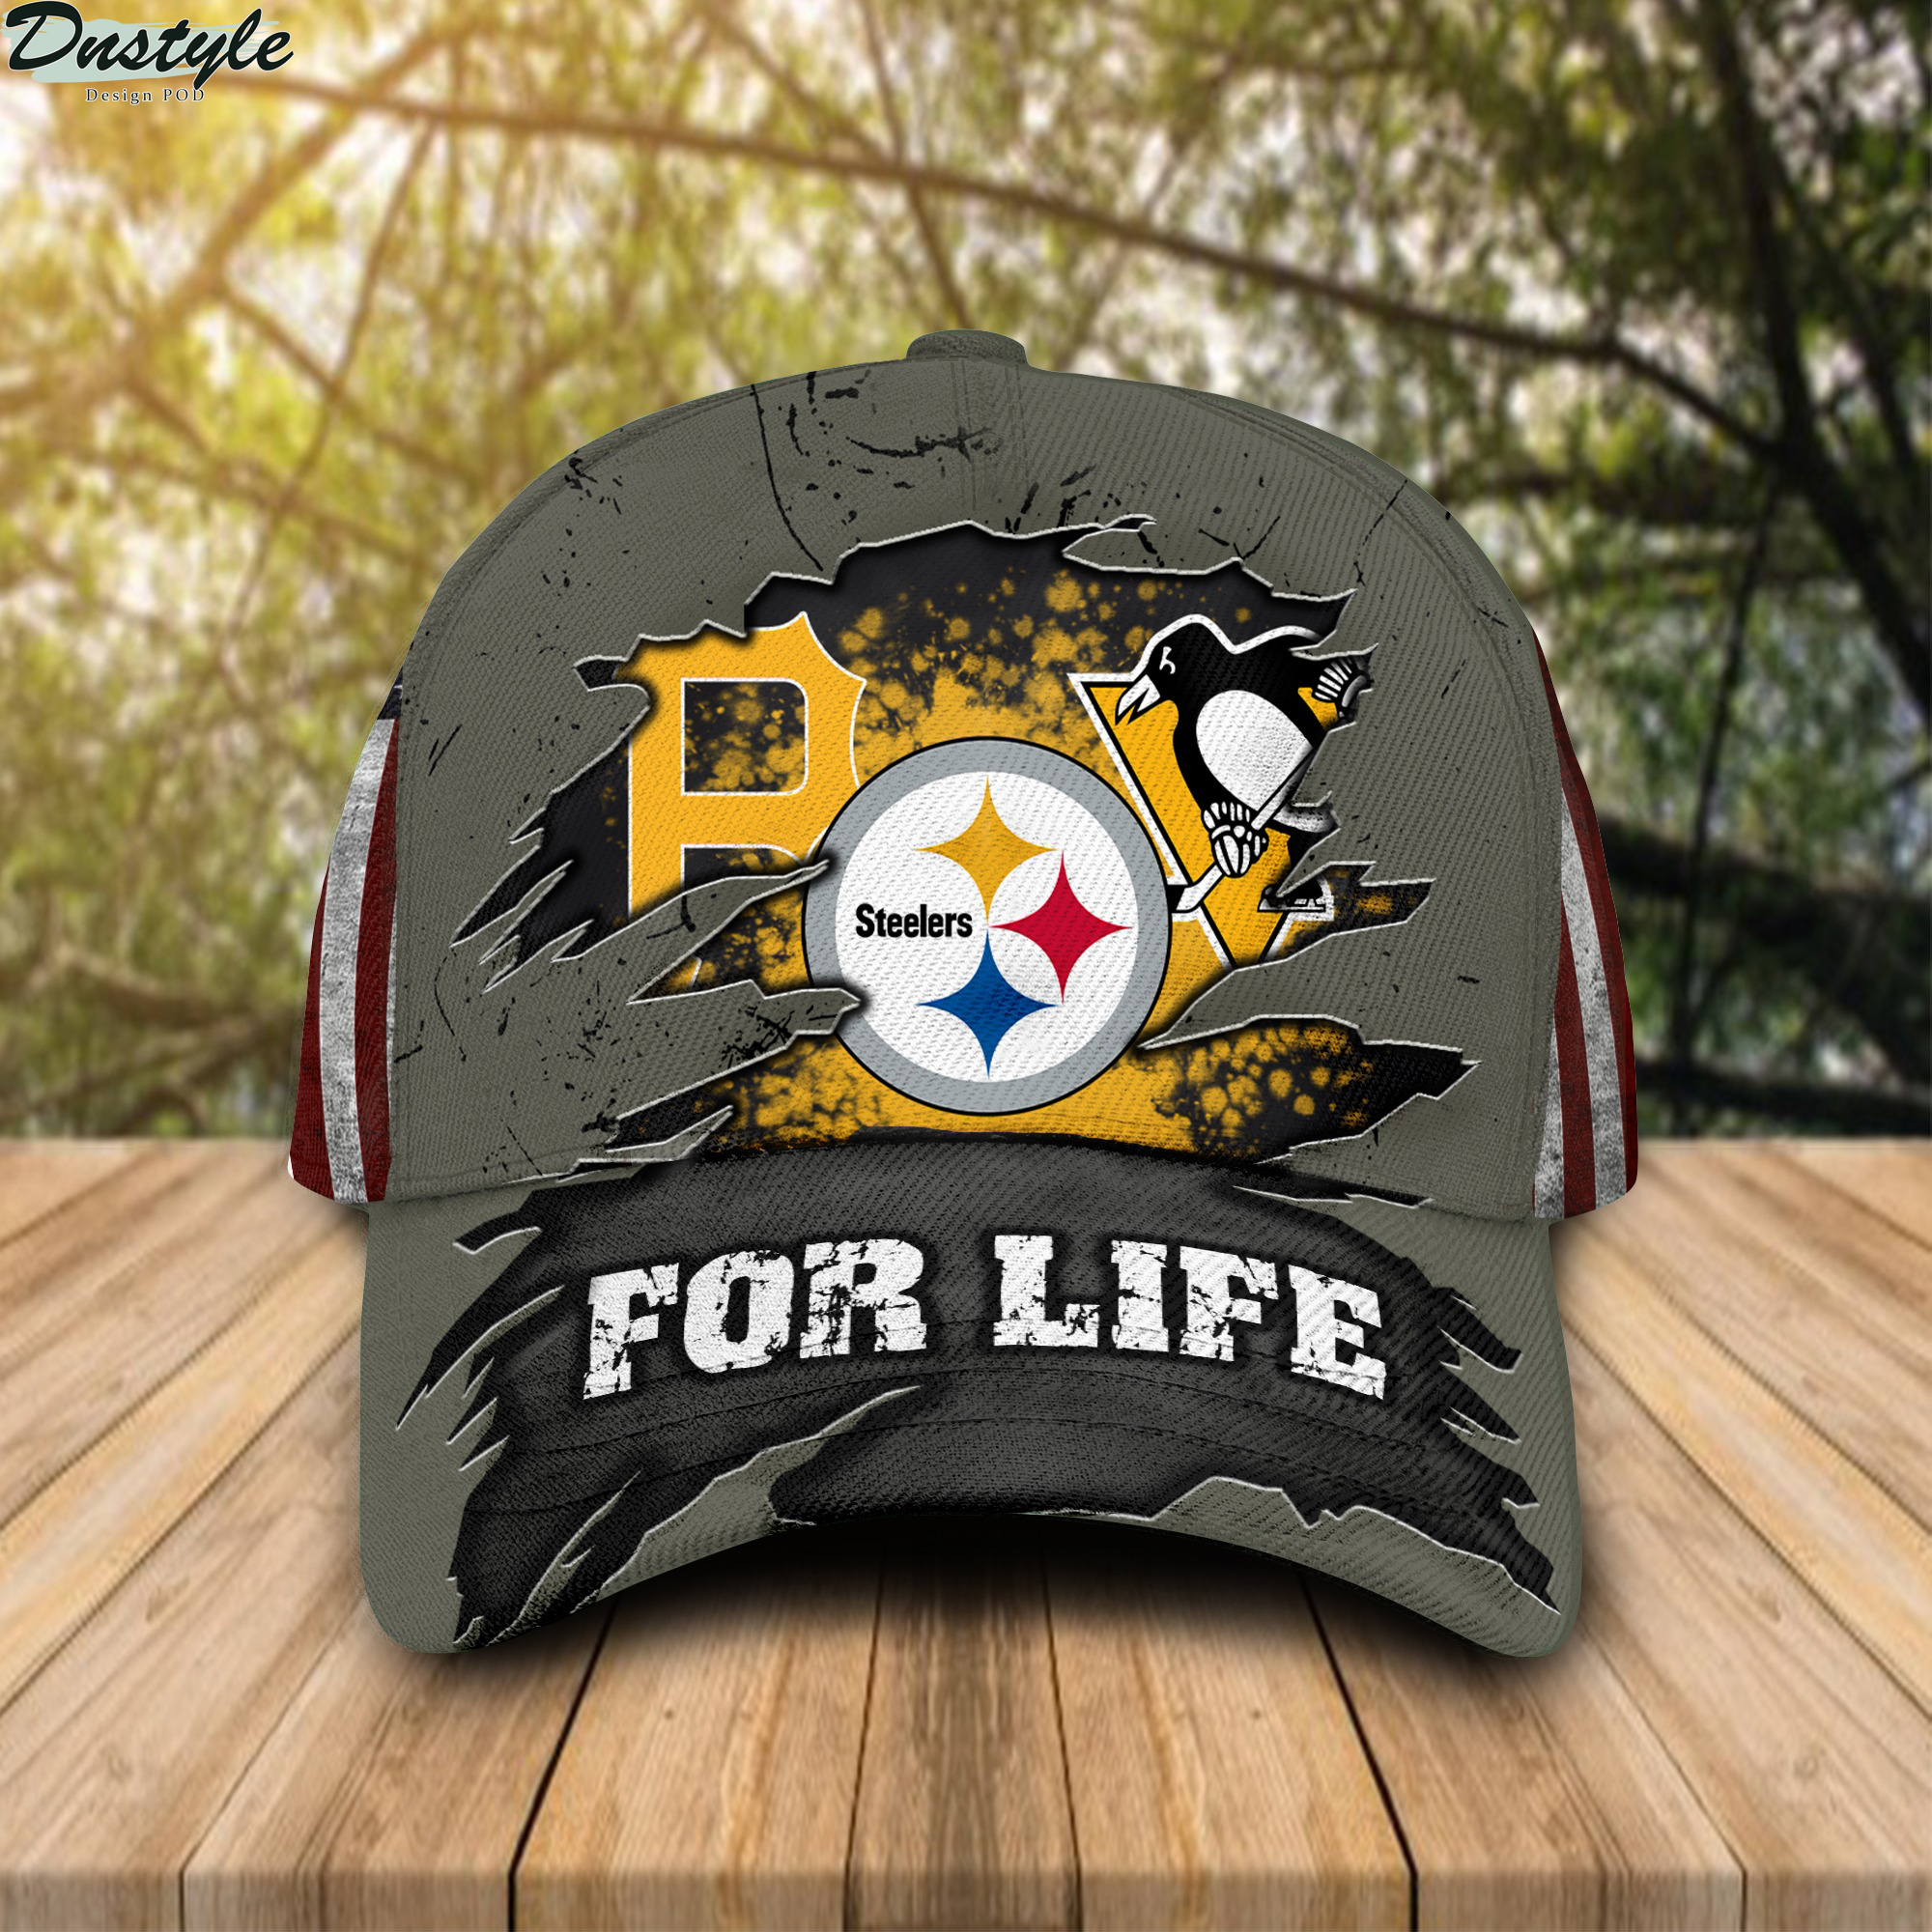 Pittsburgh sports team pirates steelers penguins for life cap